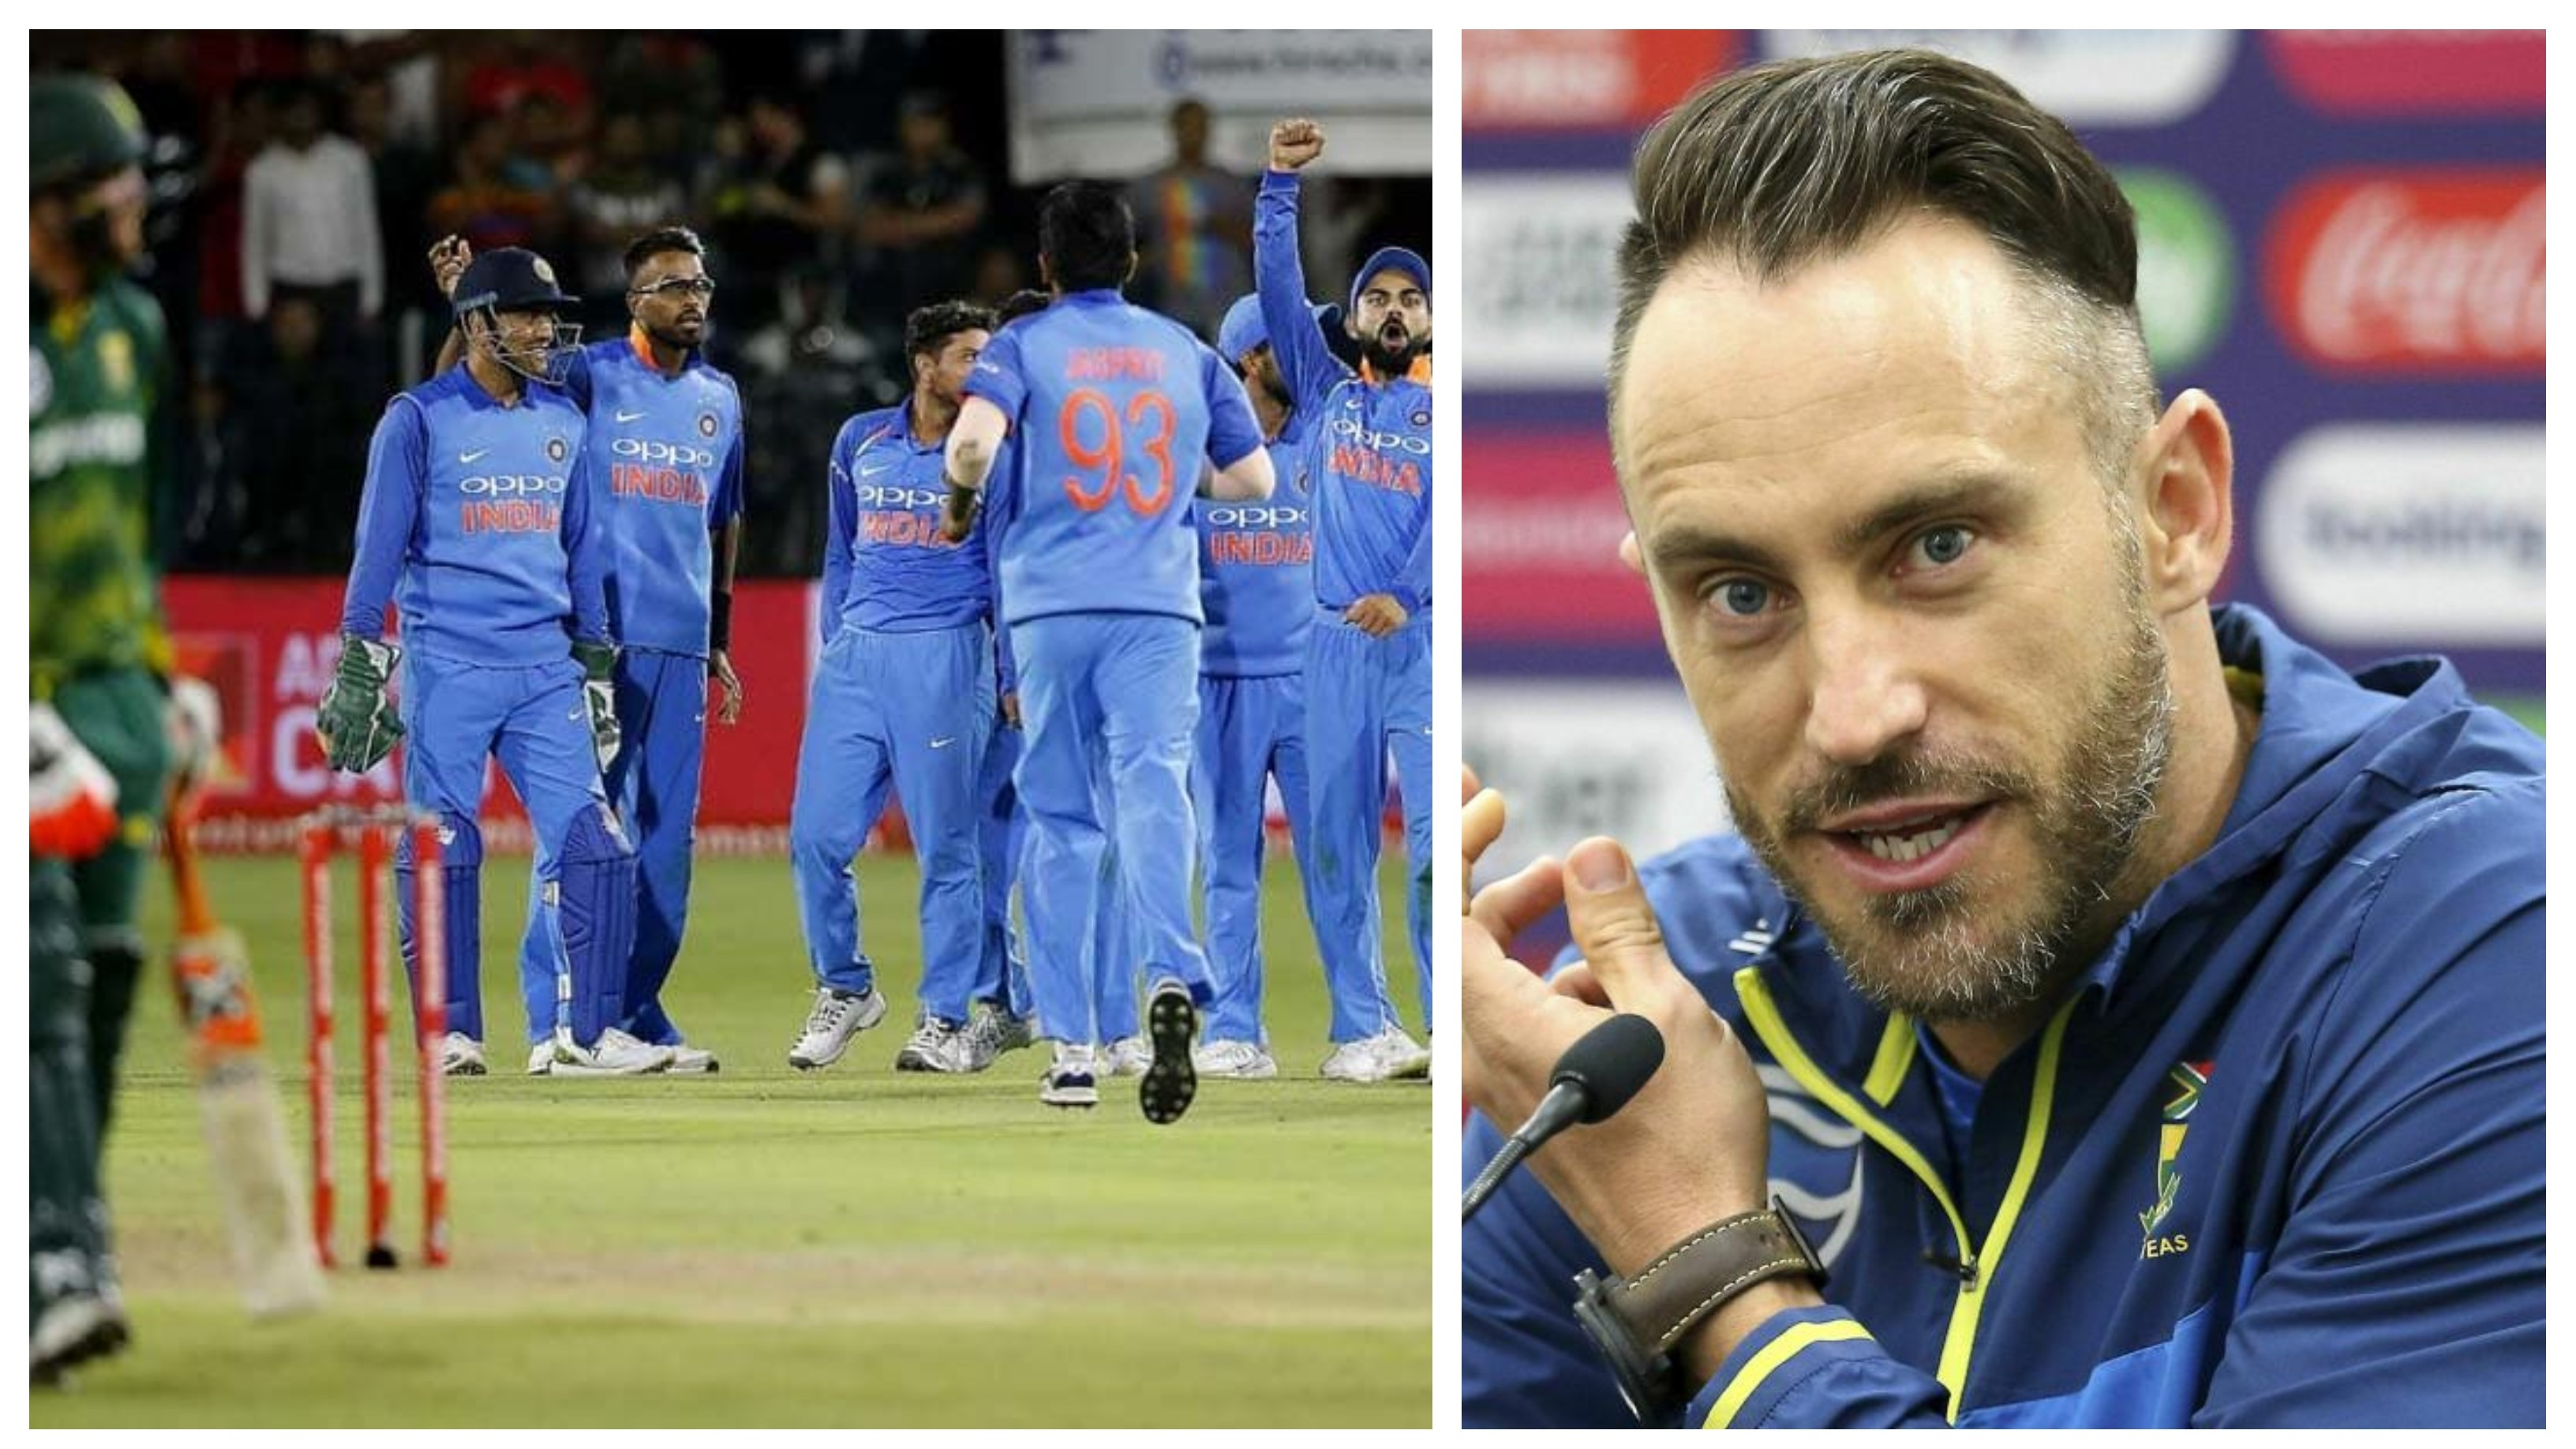 'It was men taking on the boys', Du Plessis admits being outplayed by India during 2018 ODI series at home